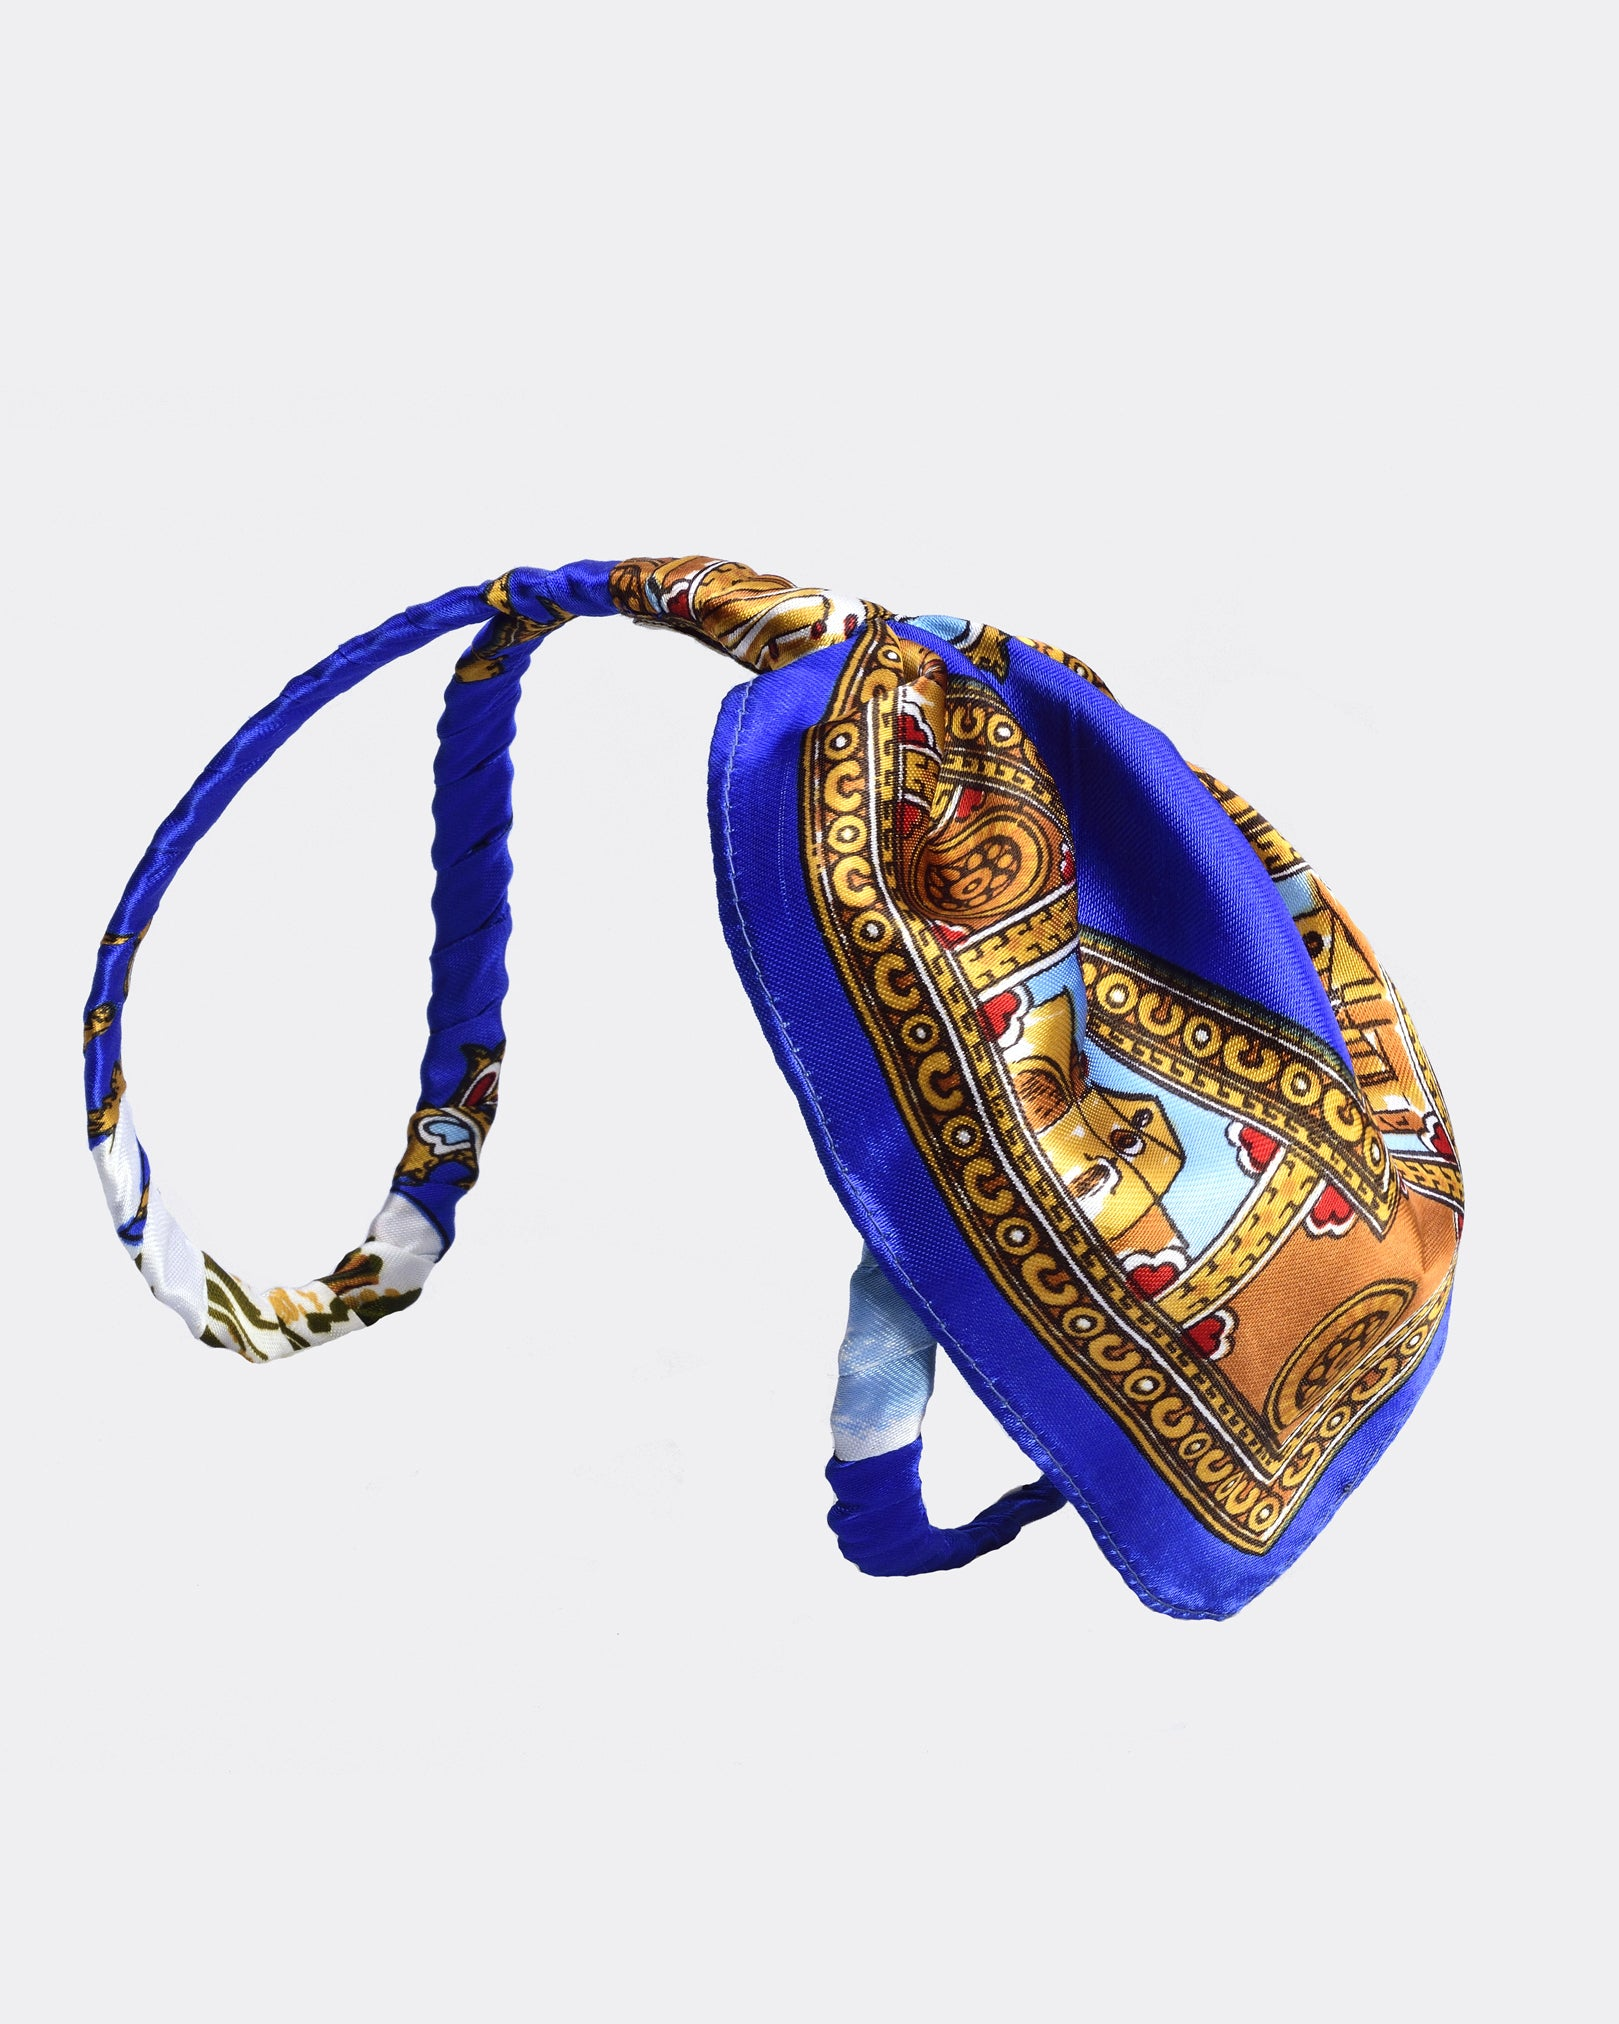 MISS GUMMO Blue Foulard Headpiece